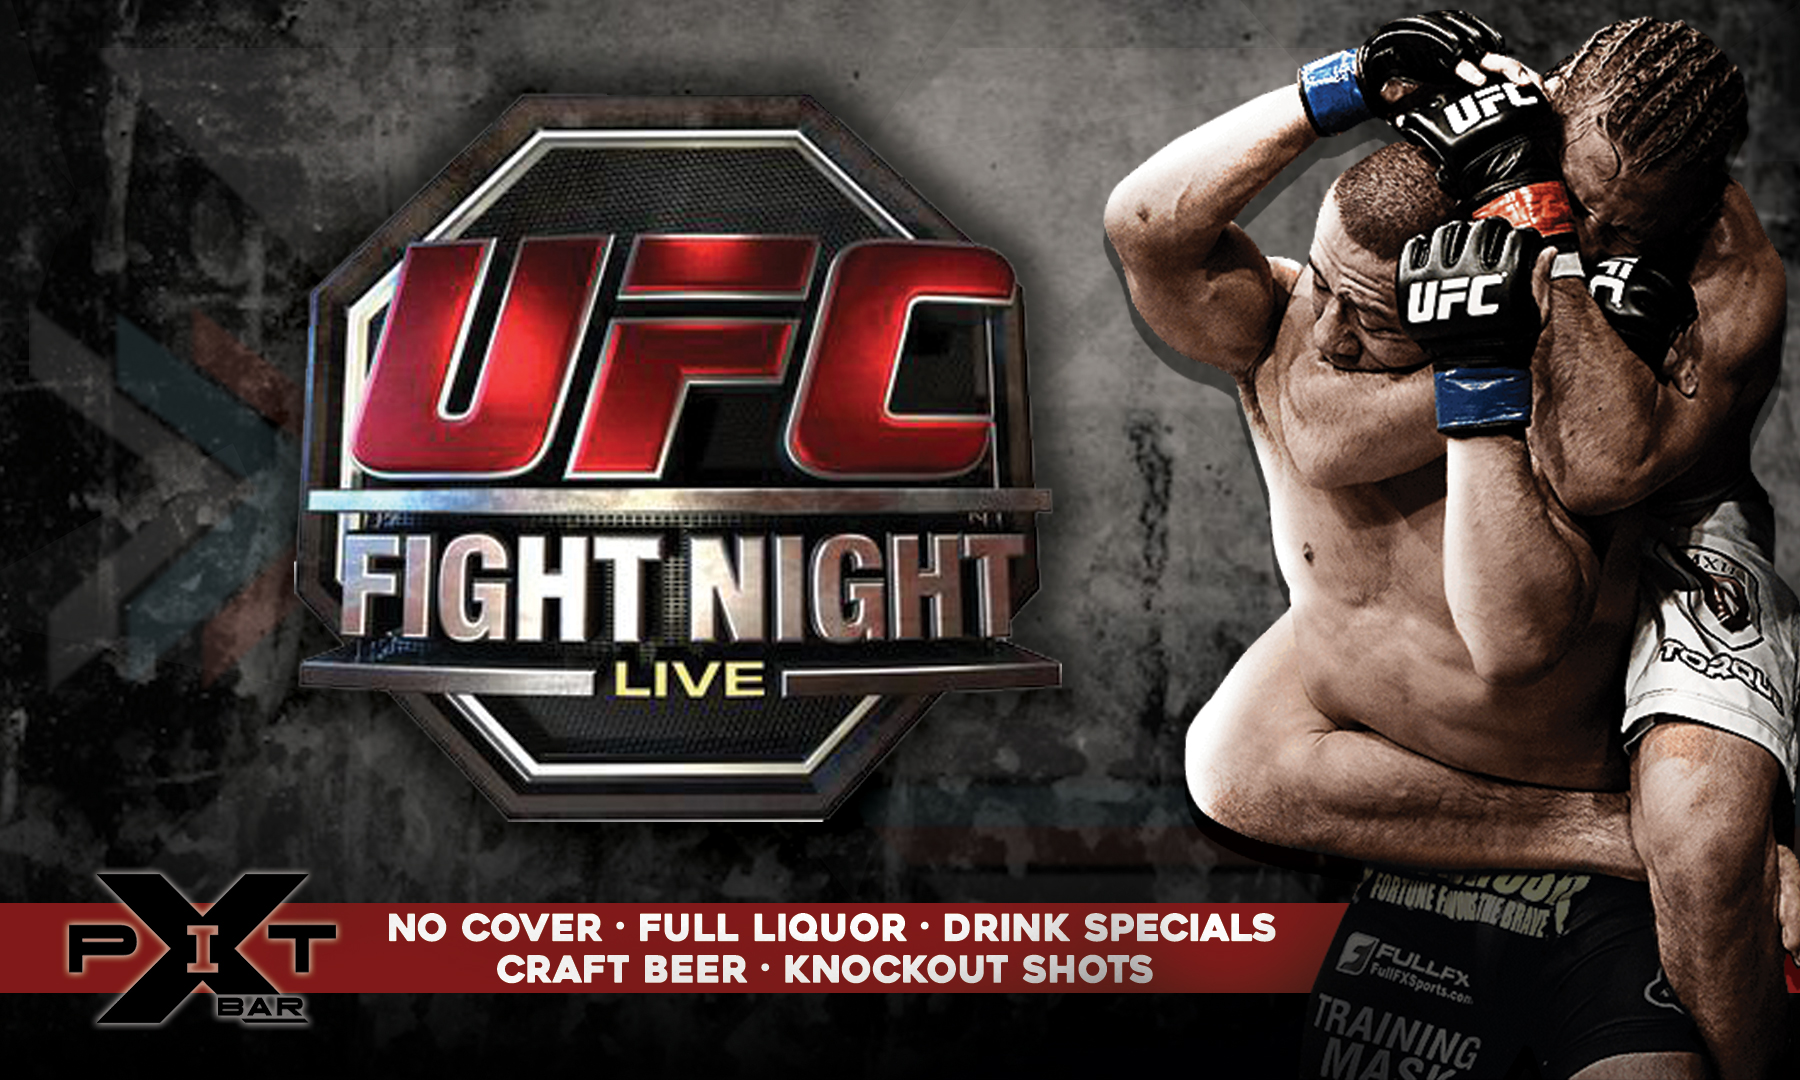 ufc the ultimate fighting championships The ultimate fighting championship (ufc) is the largest mixed martial arts promotion company in the world featuring most of the top-ranked fighters in the sport based in the united states, the ufc produces events worldwide the organization showcases nine weight divisions and abides by the unified rules of mixed martial arts the ufc has.